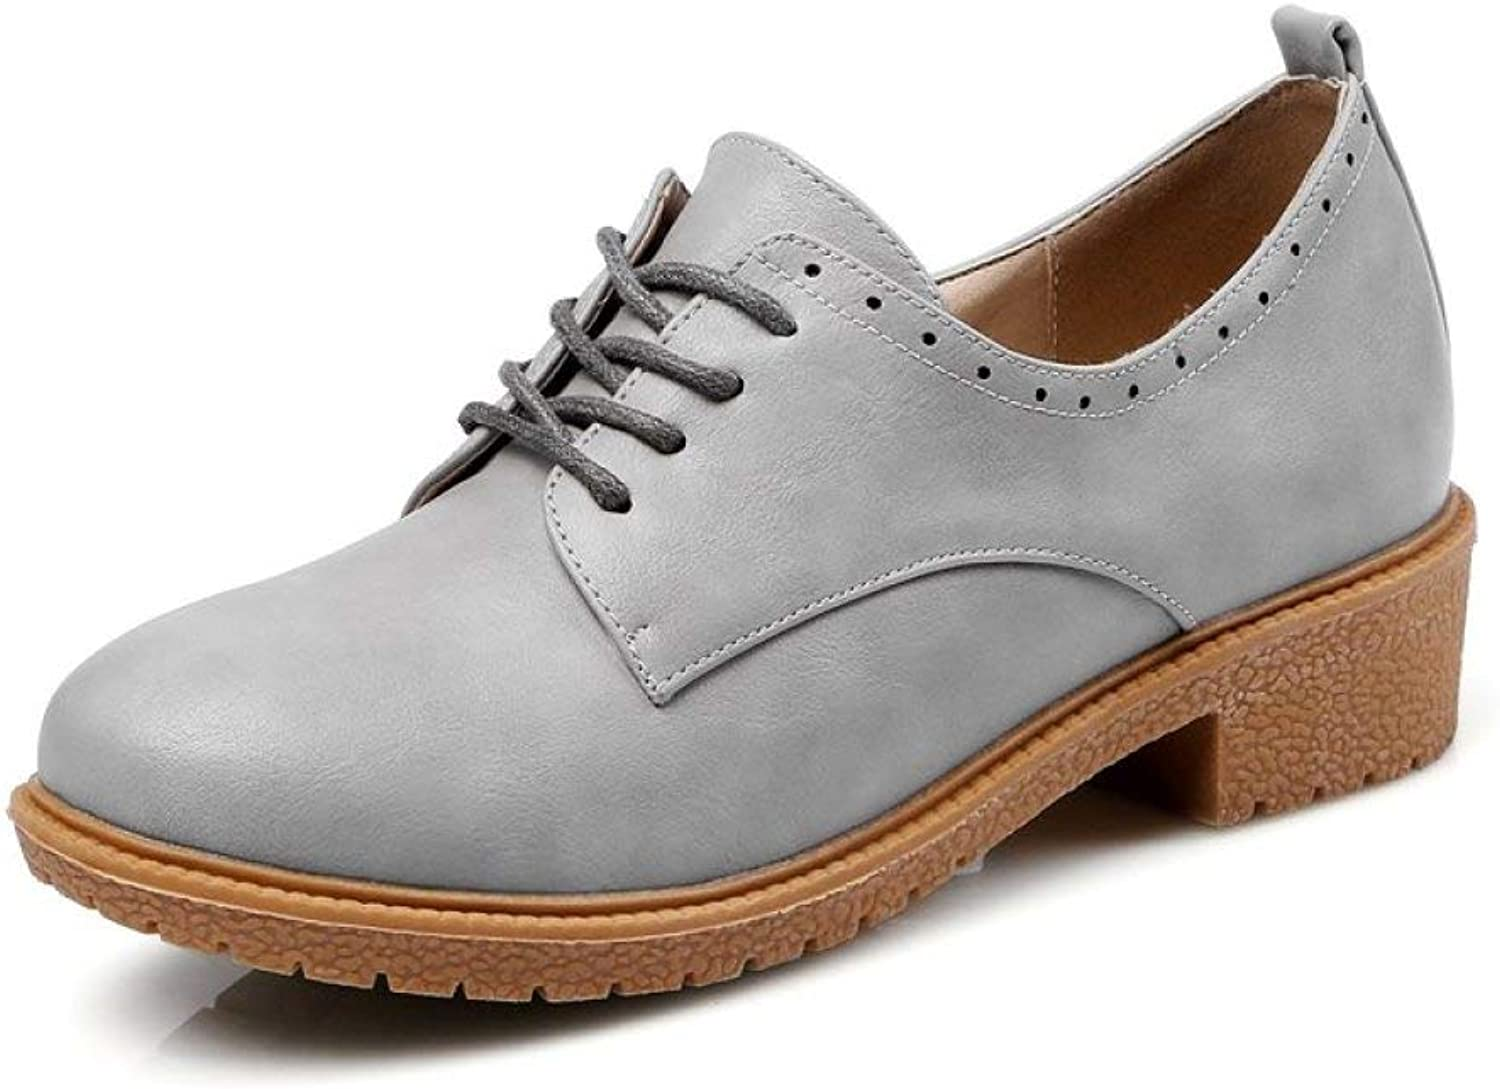 Fay Waters Women's Perforated Platform Oxfords Round Toe Lace UP Low Heel Brogue Wingtip shoes